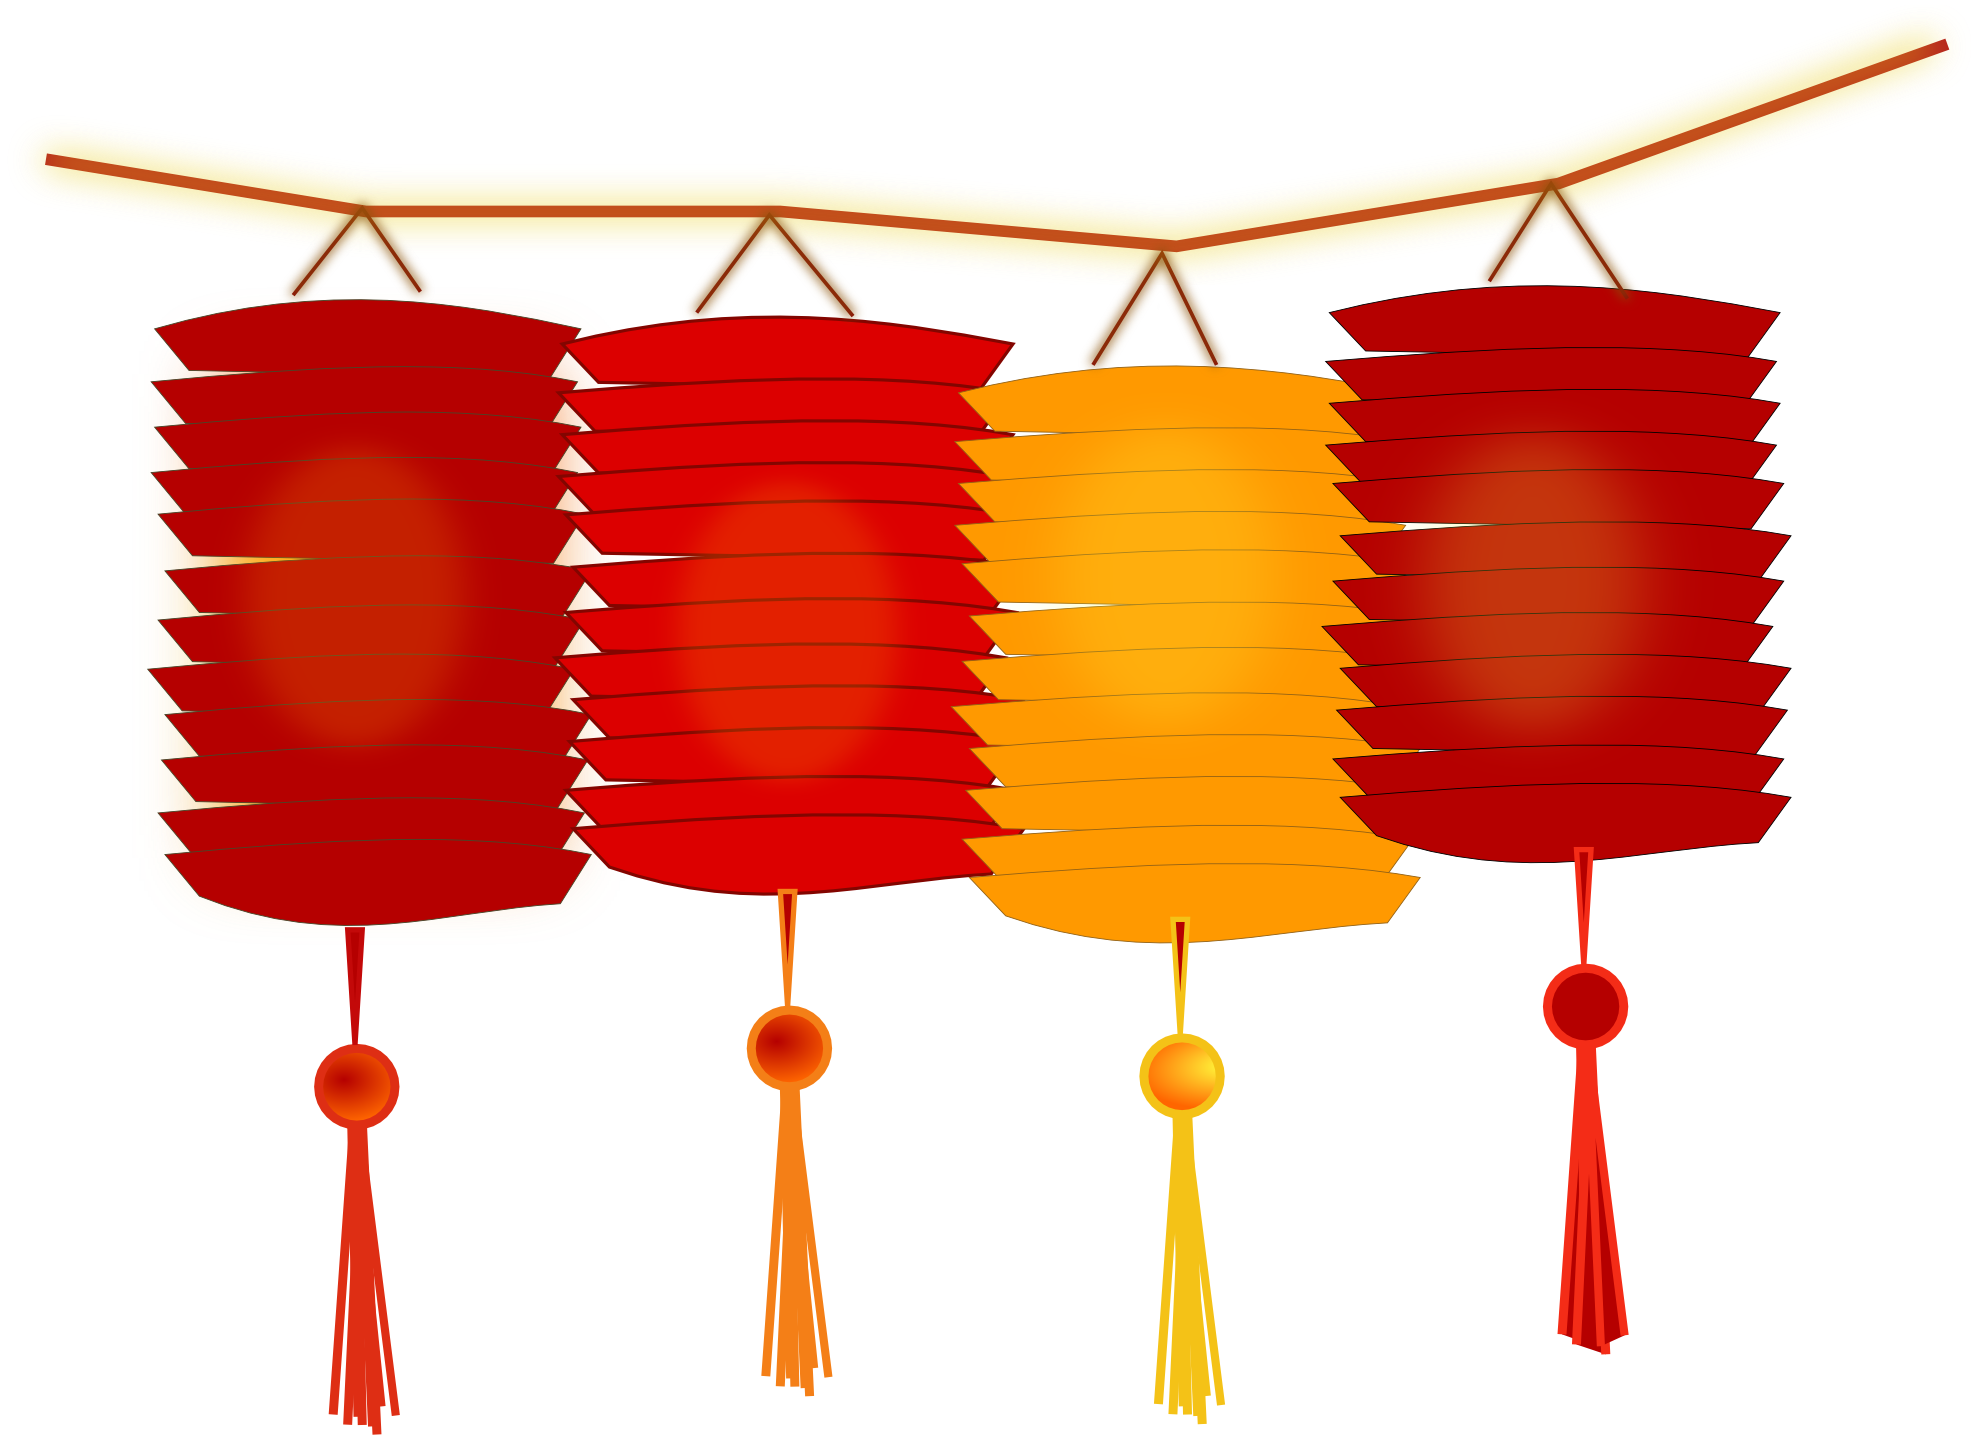 Latern clipart chinese new year decoration #1